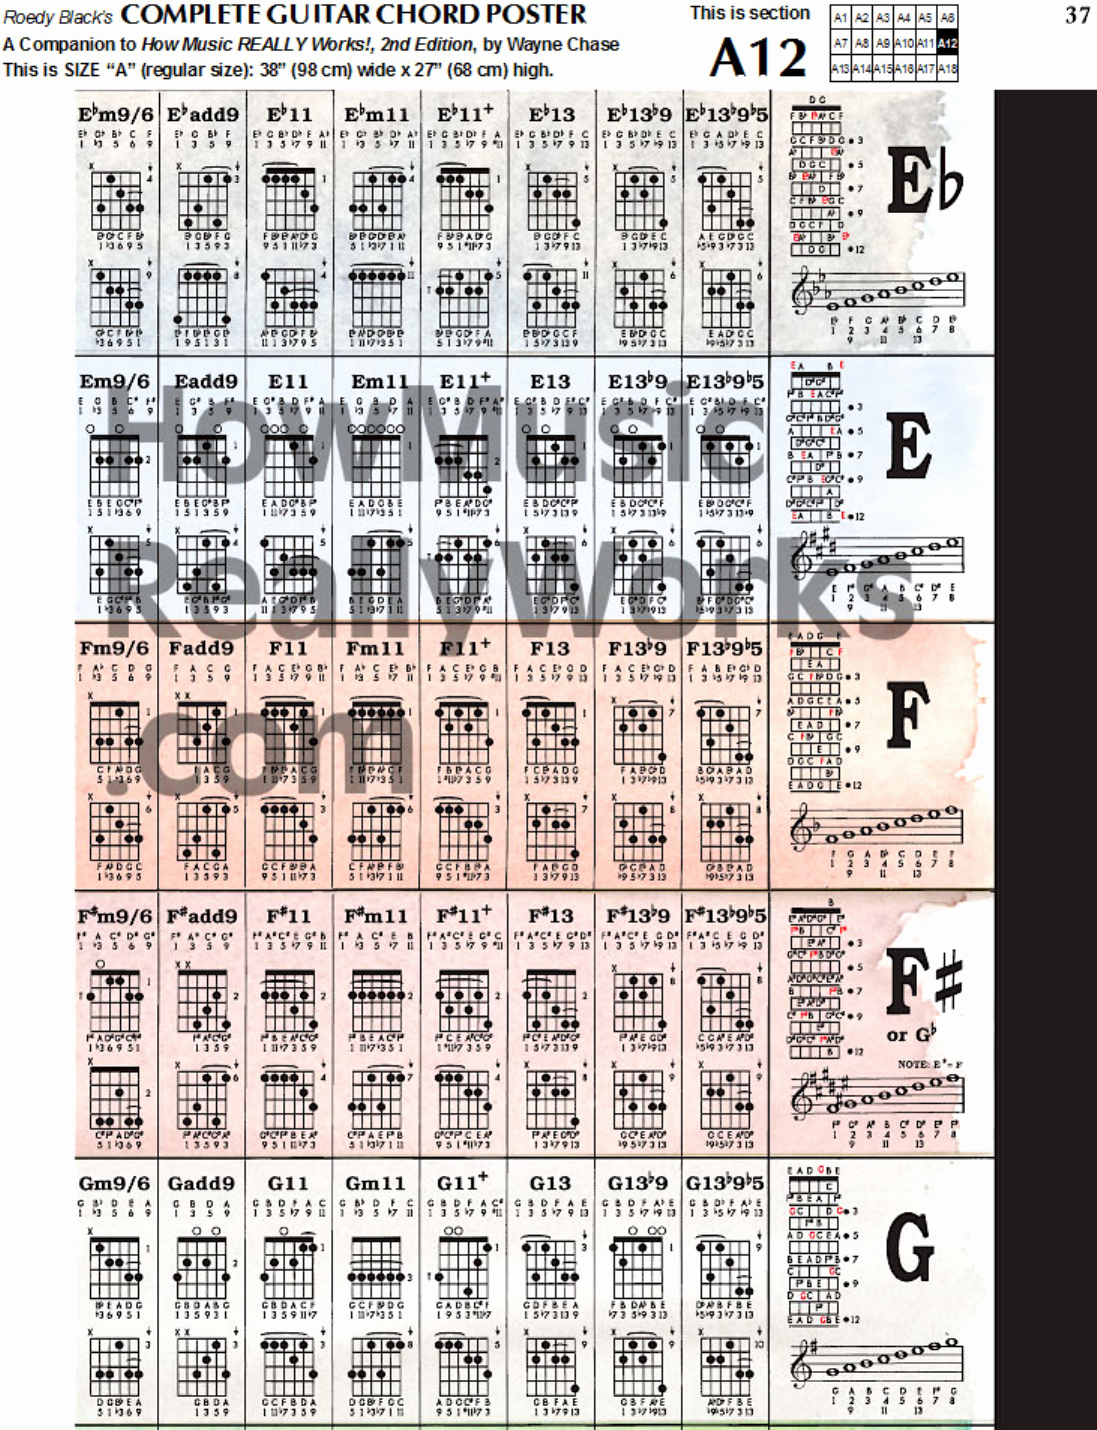 Complete Guitar Chord Chart Awesome Download Plete Guitar Chord Chart Template for Free